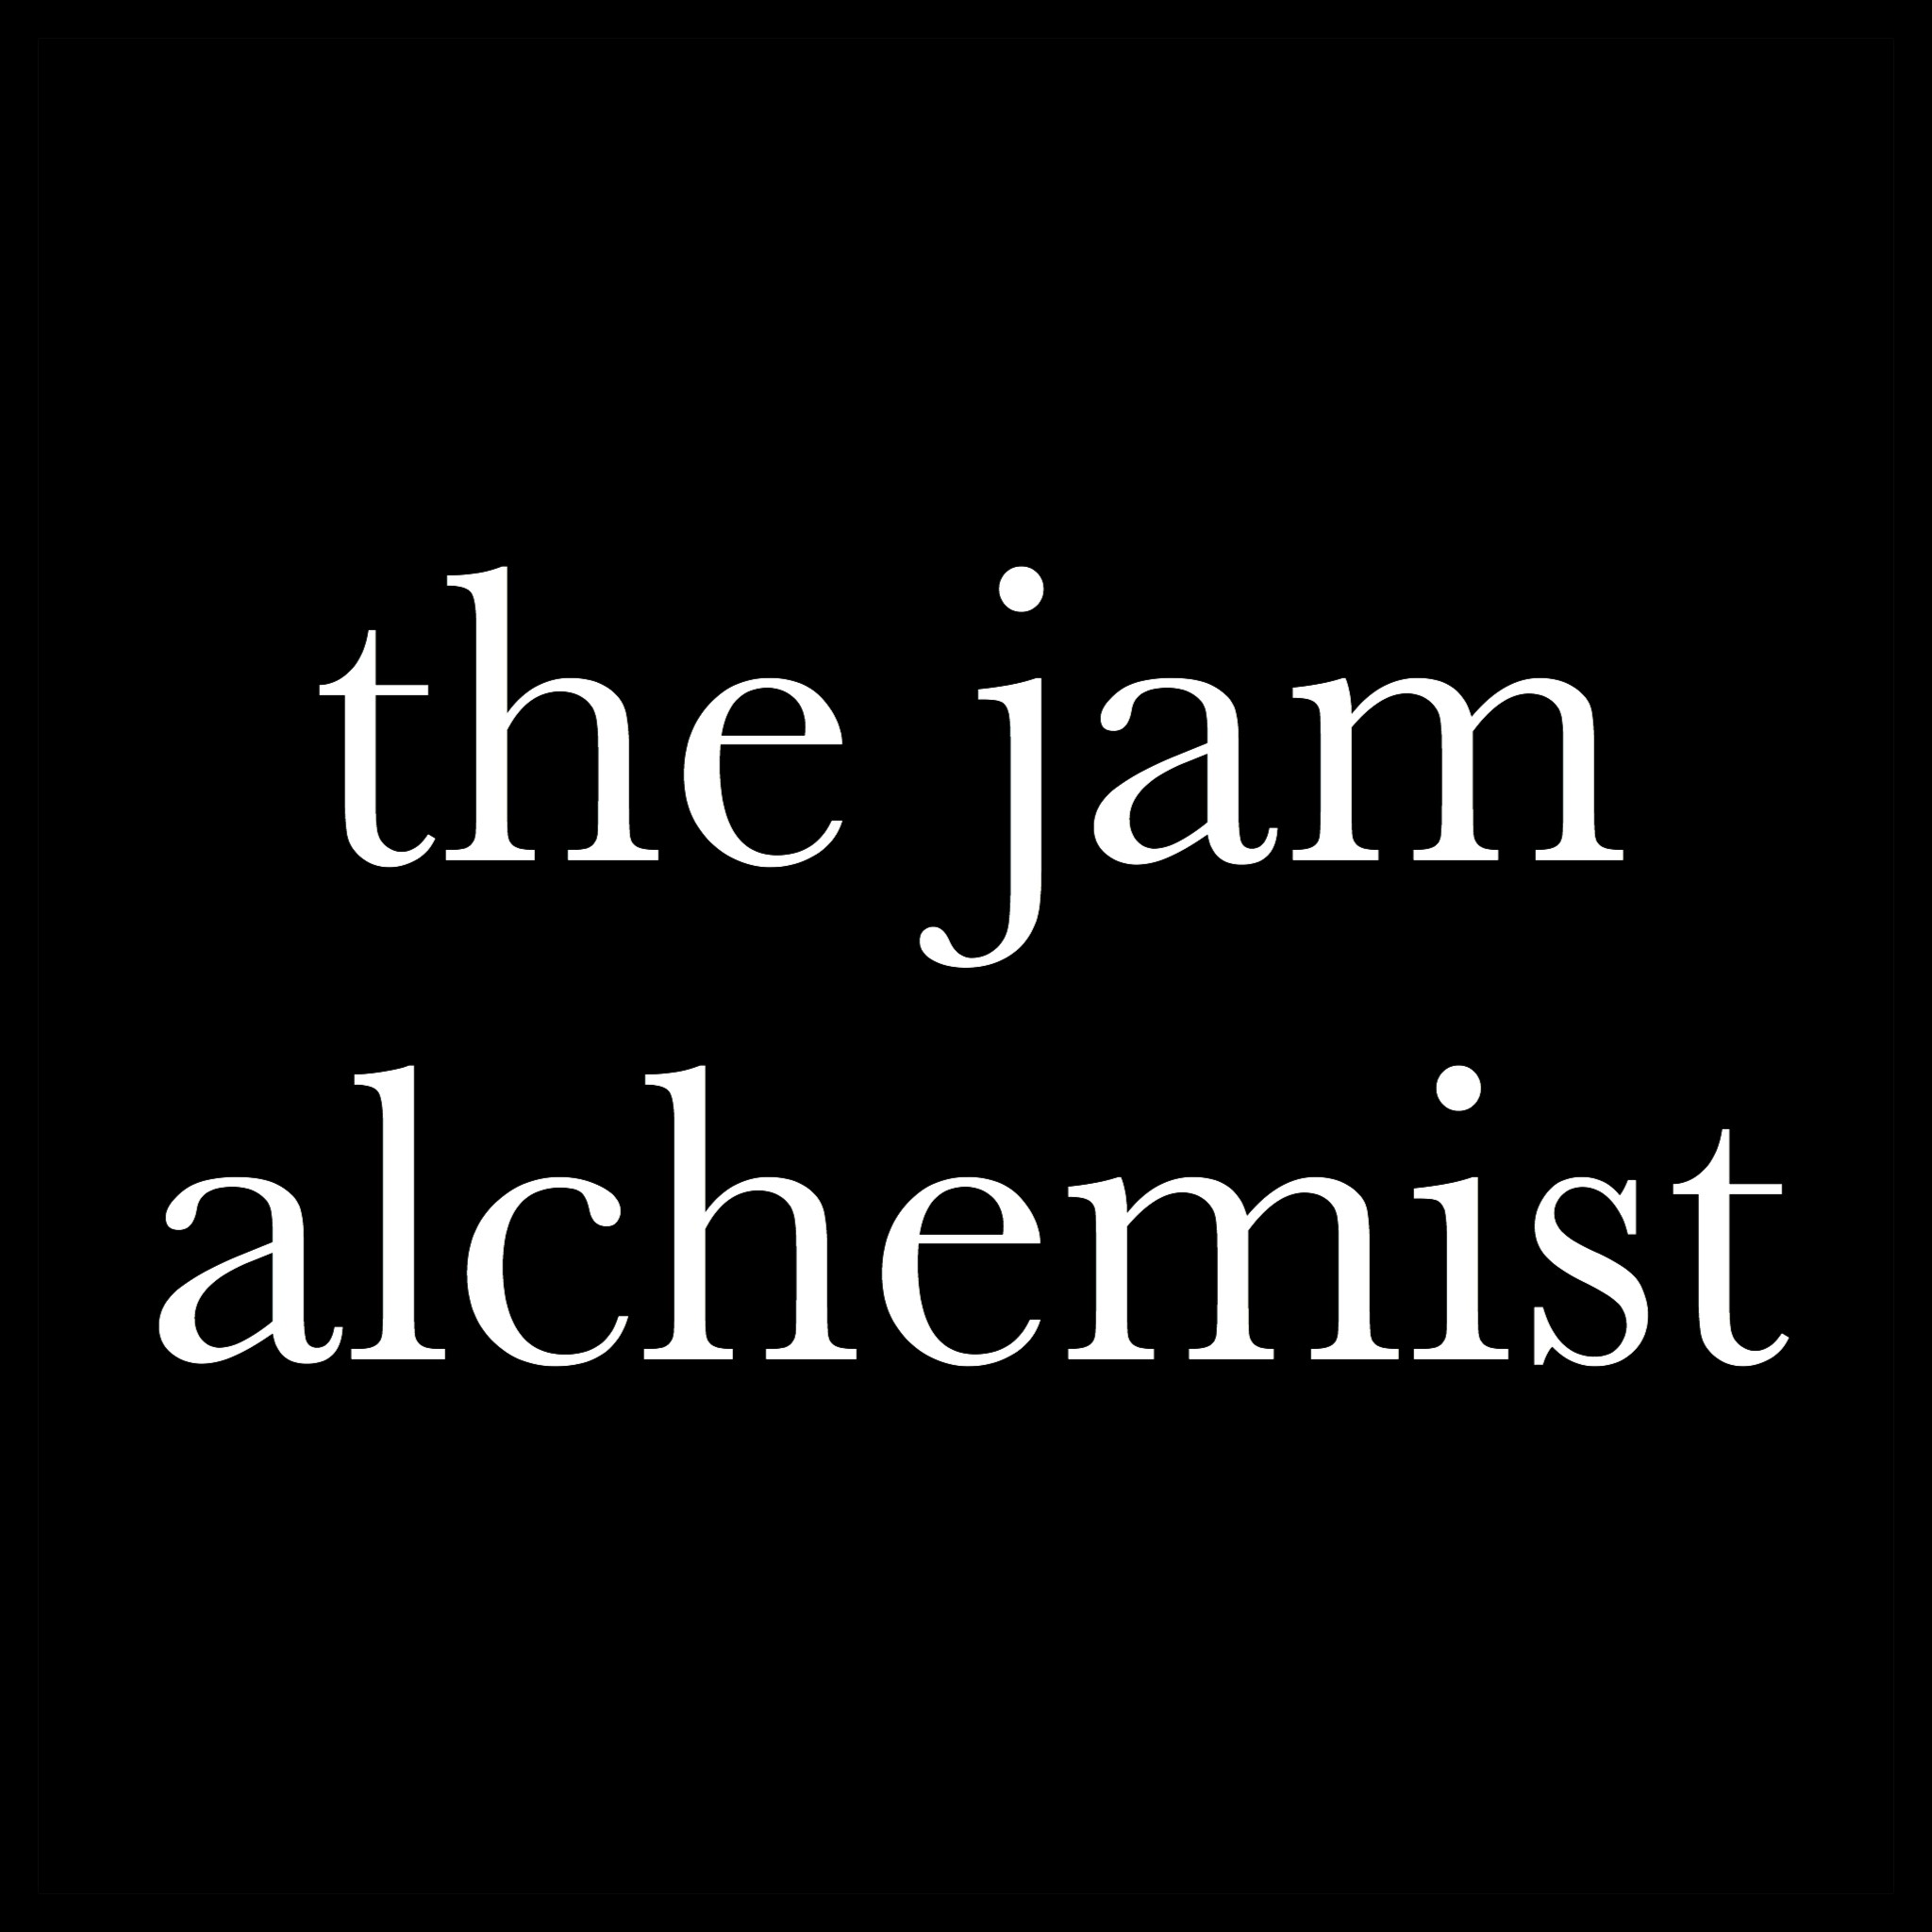 Welcome to our world of jam. Of ripe stone fruit and sweet berries, tart citrus and wild growing herbs. Great trees and overgrown orchards humming with bees, heavy with the pungent smell of damp earth. We offer you the joy of seasonality and provenance. Join us on this edible journey and rediscover the simplicity of sensorial pleasure.